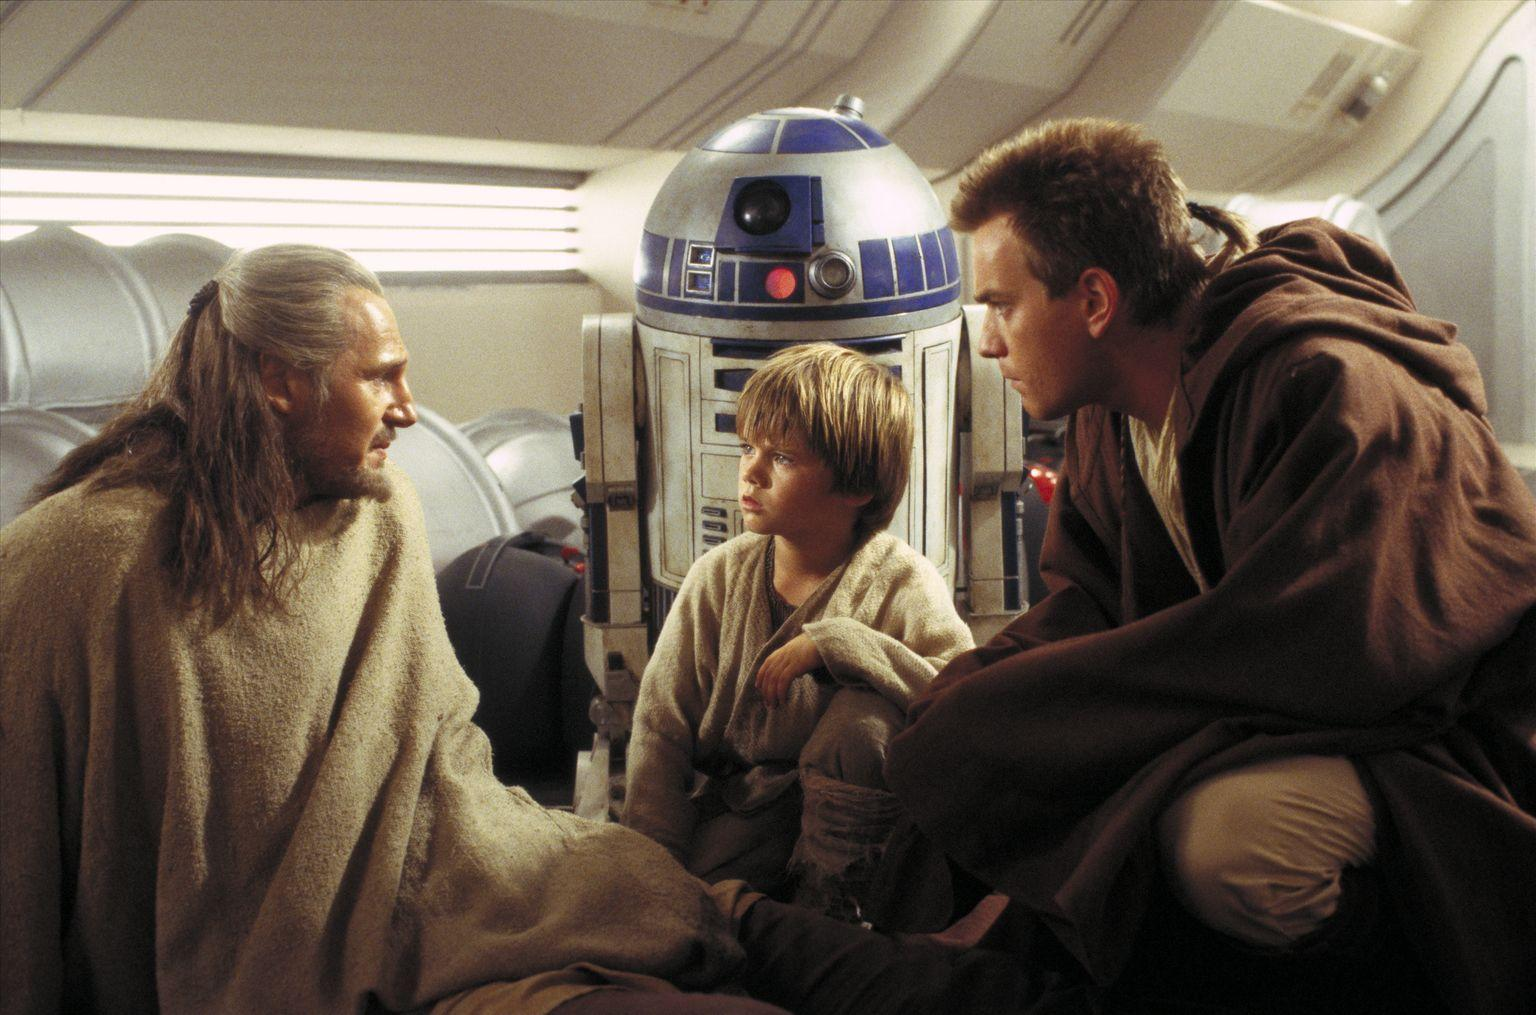 an analysis of episode iii of the star wars